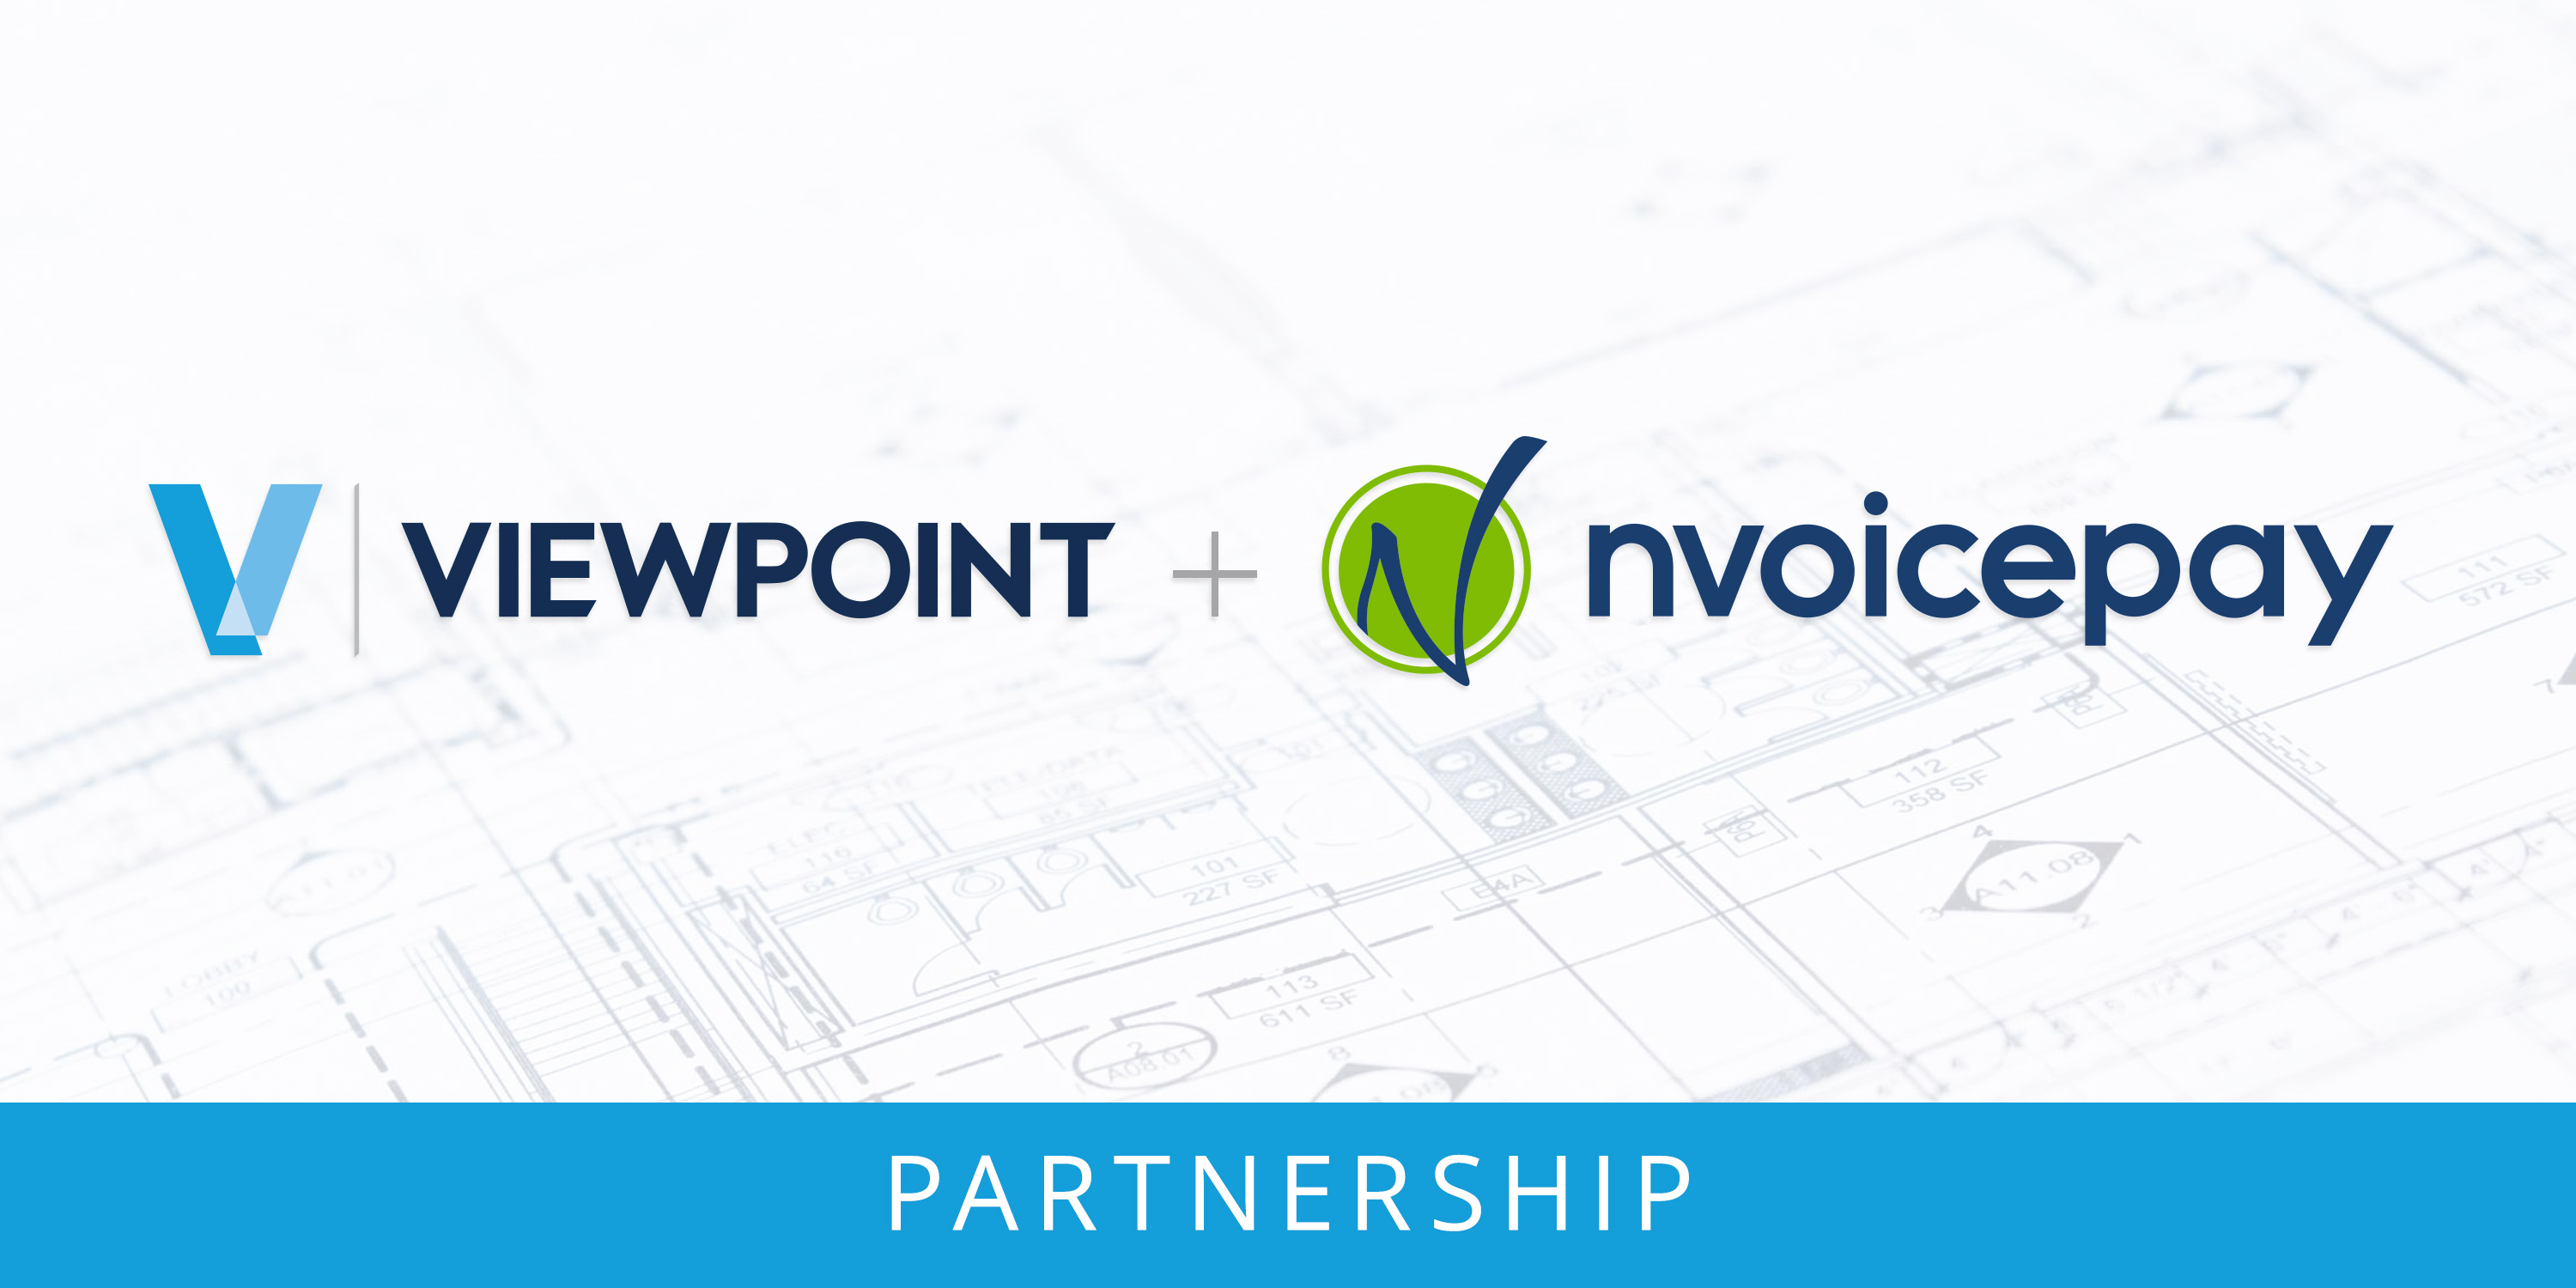 nvoicepay partners with viewpoint